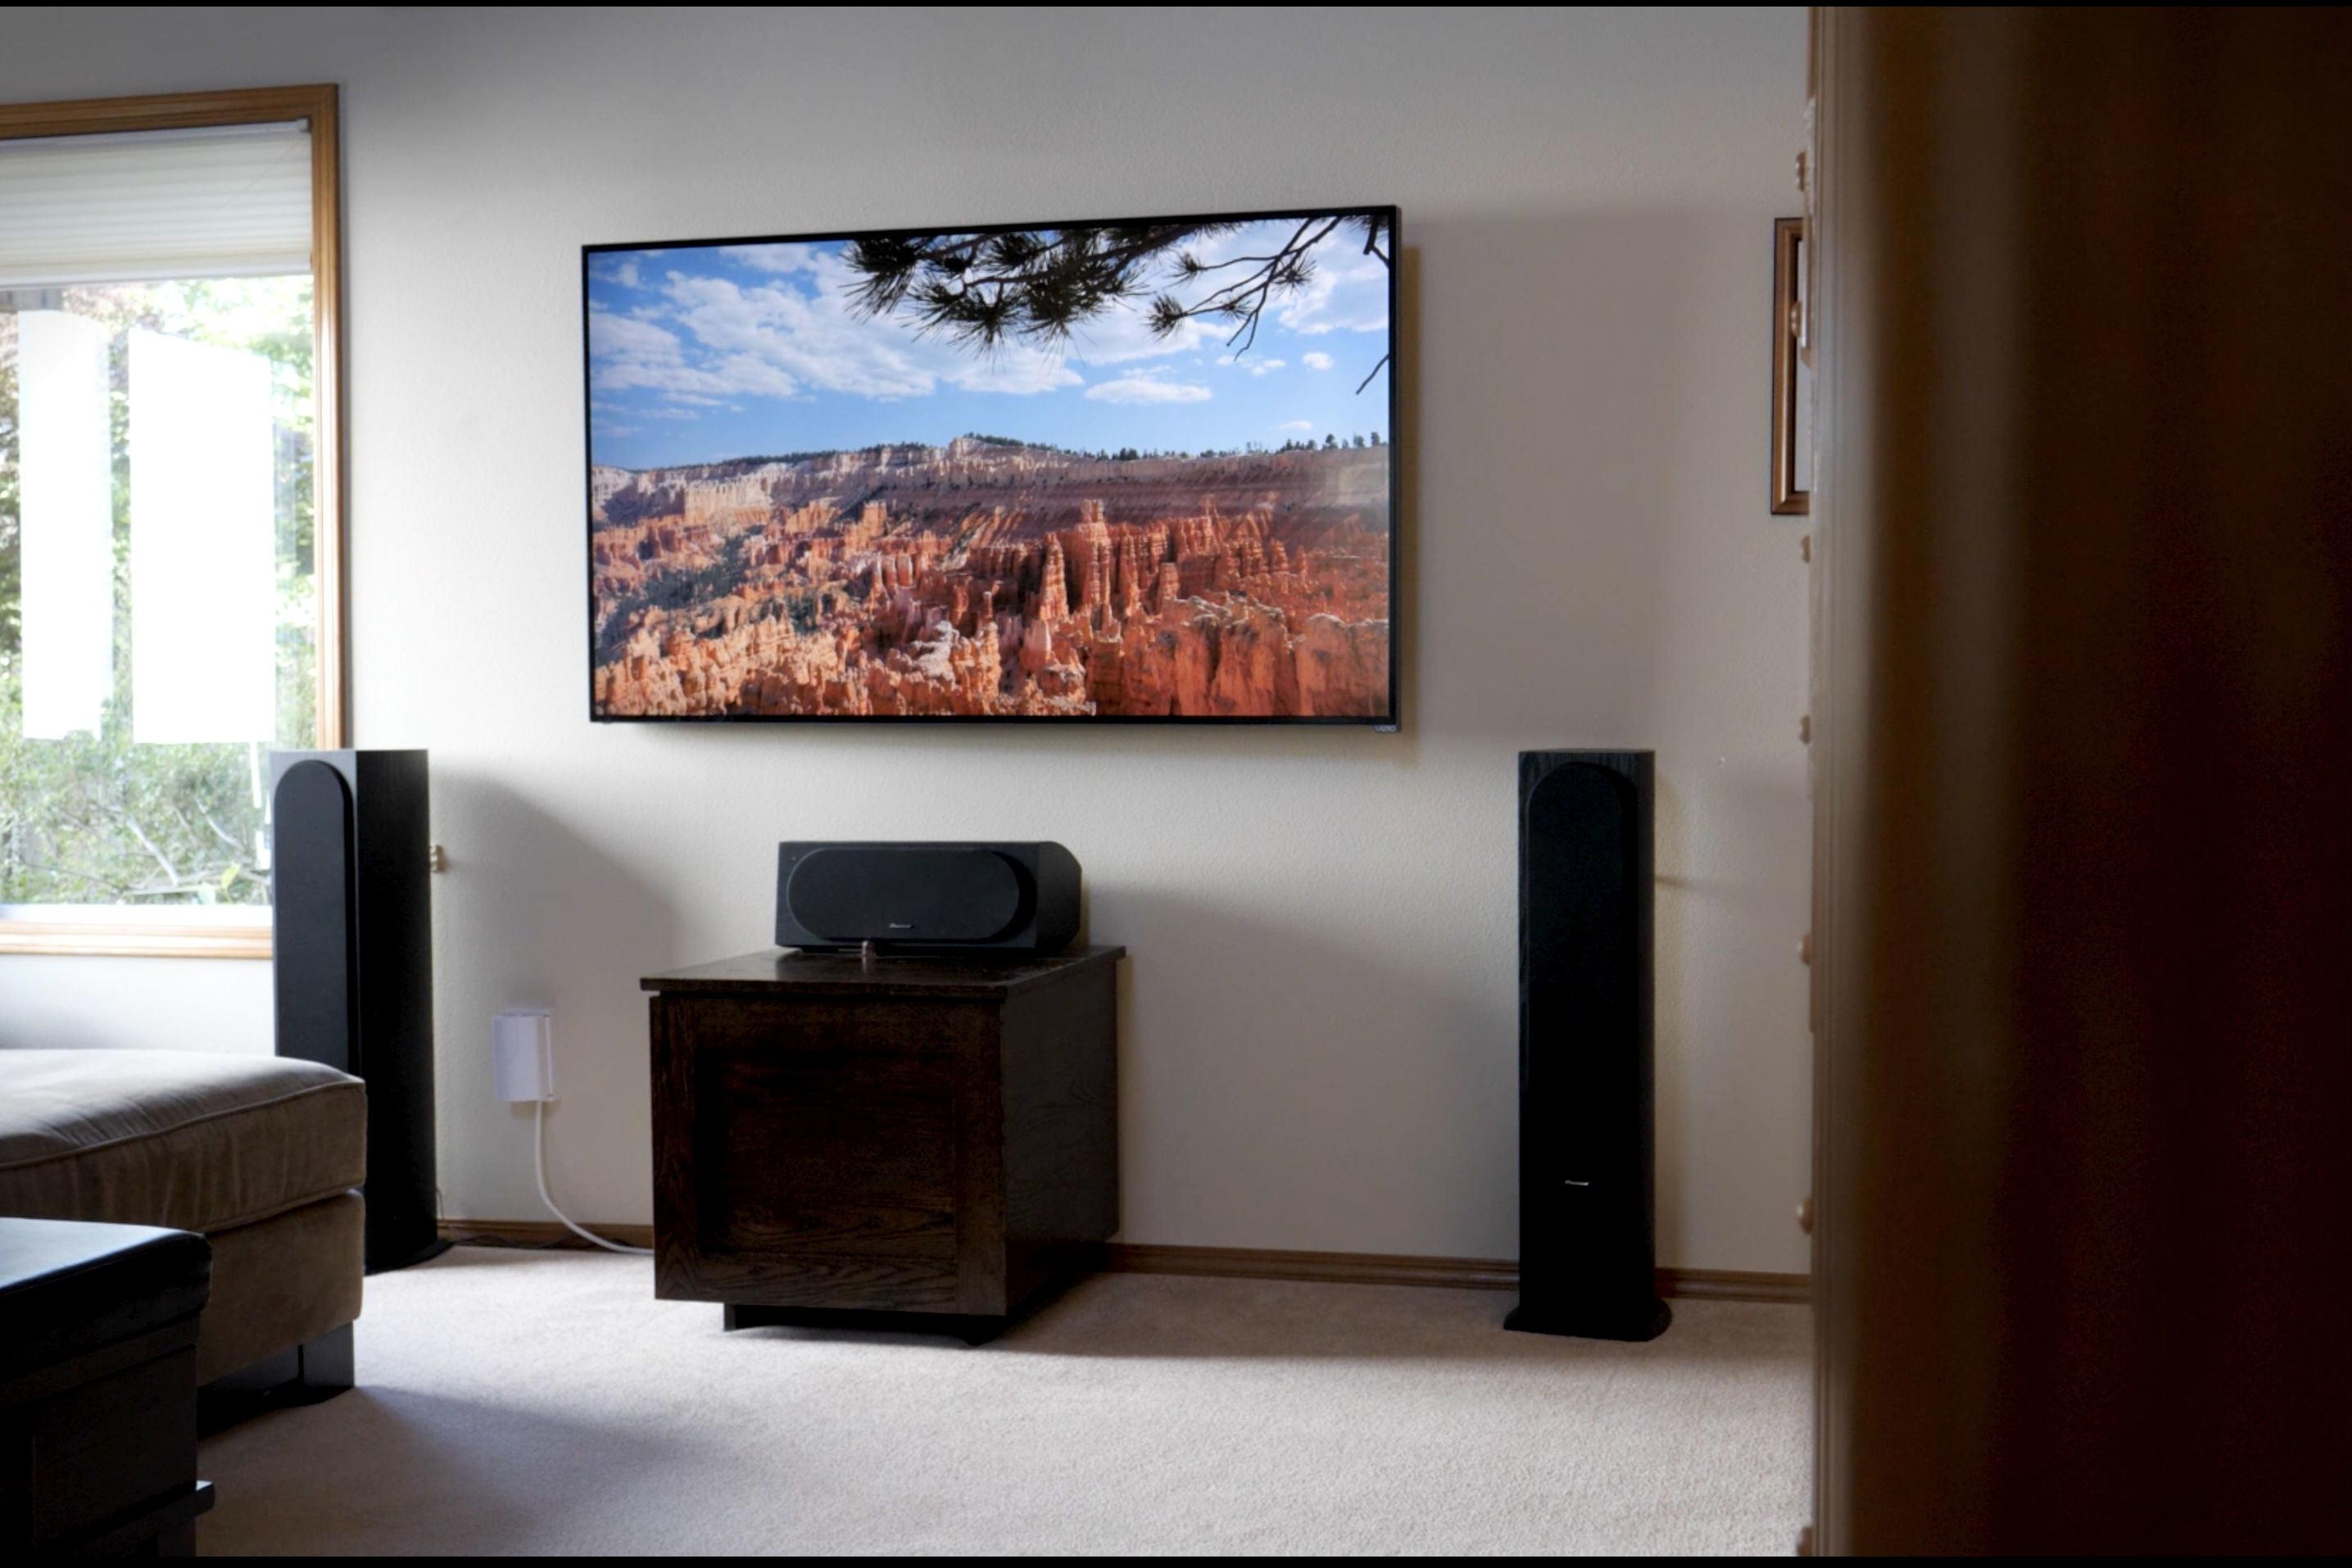 Here s how to figure out what size tv you should purchase - What size tv for living room chart ...